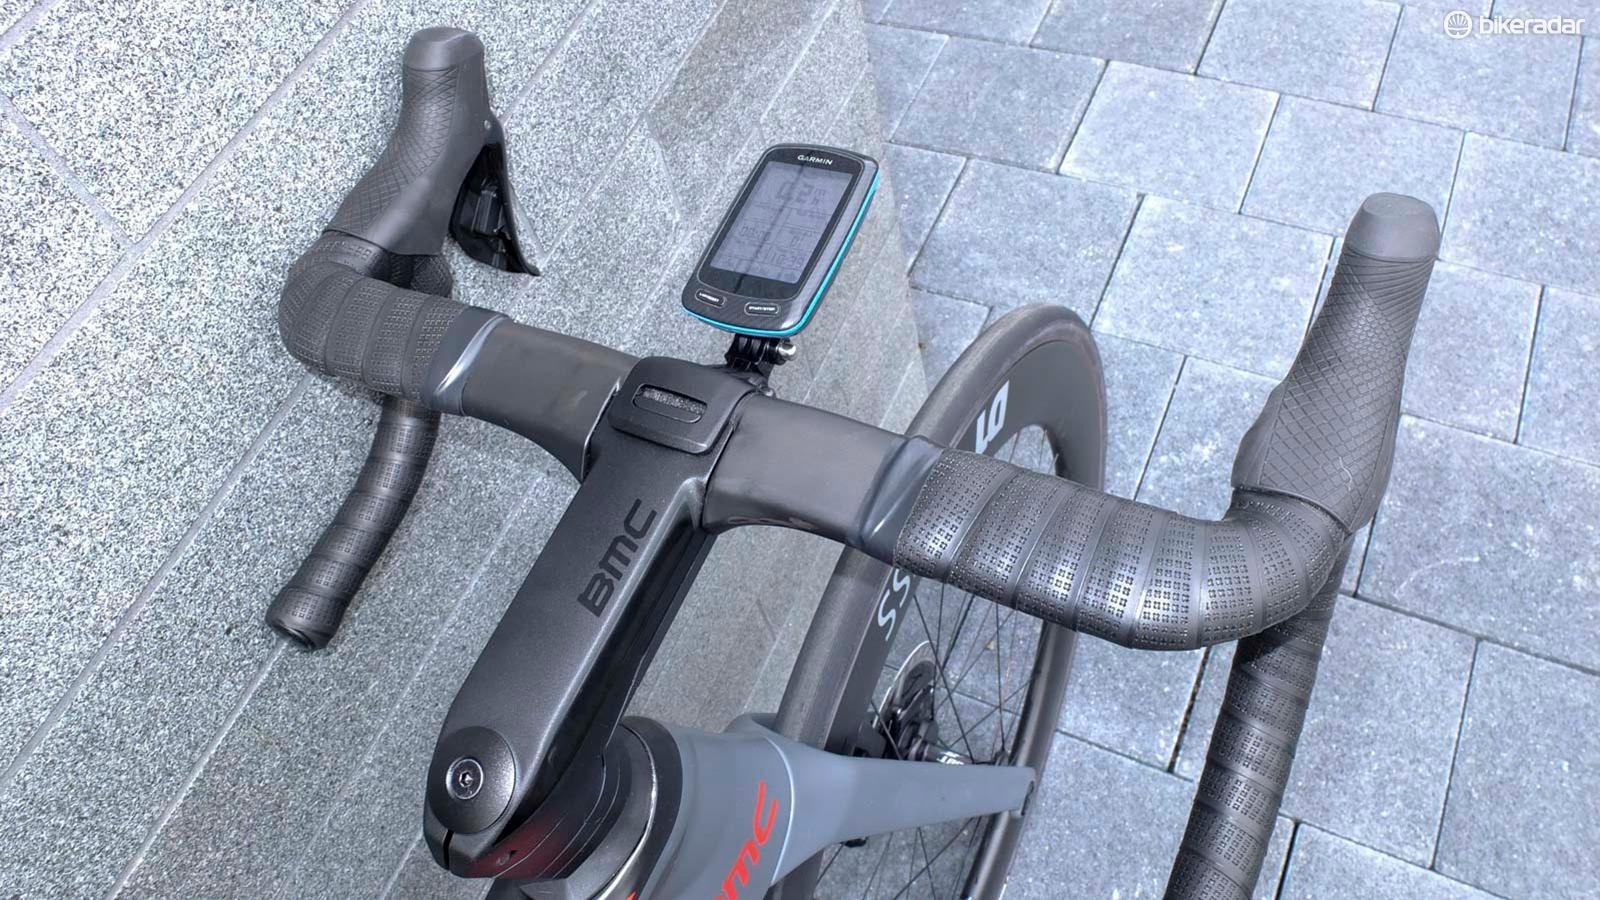 The ICS carbon bar and alloy stem